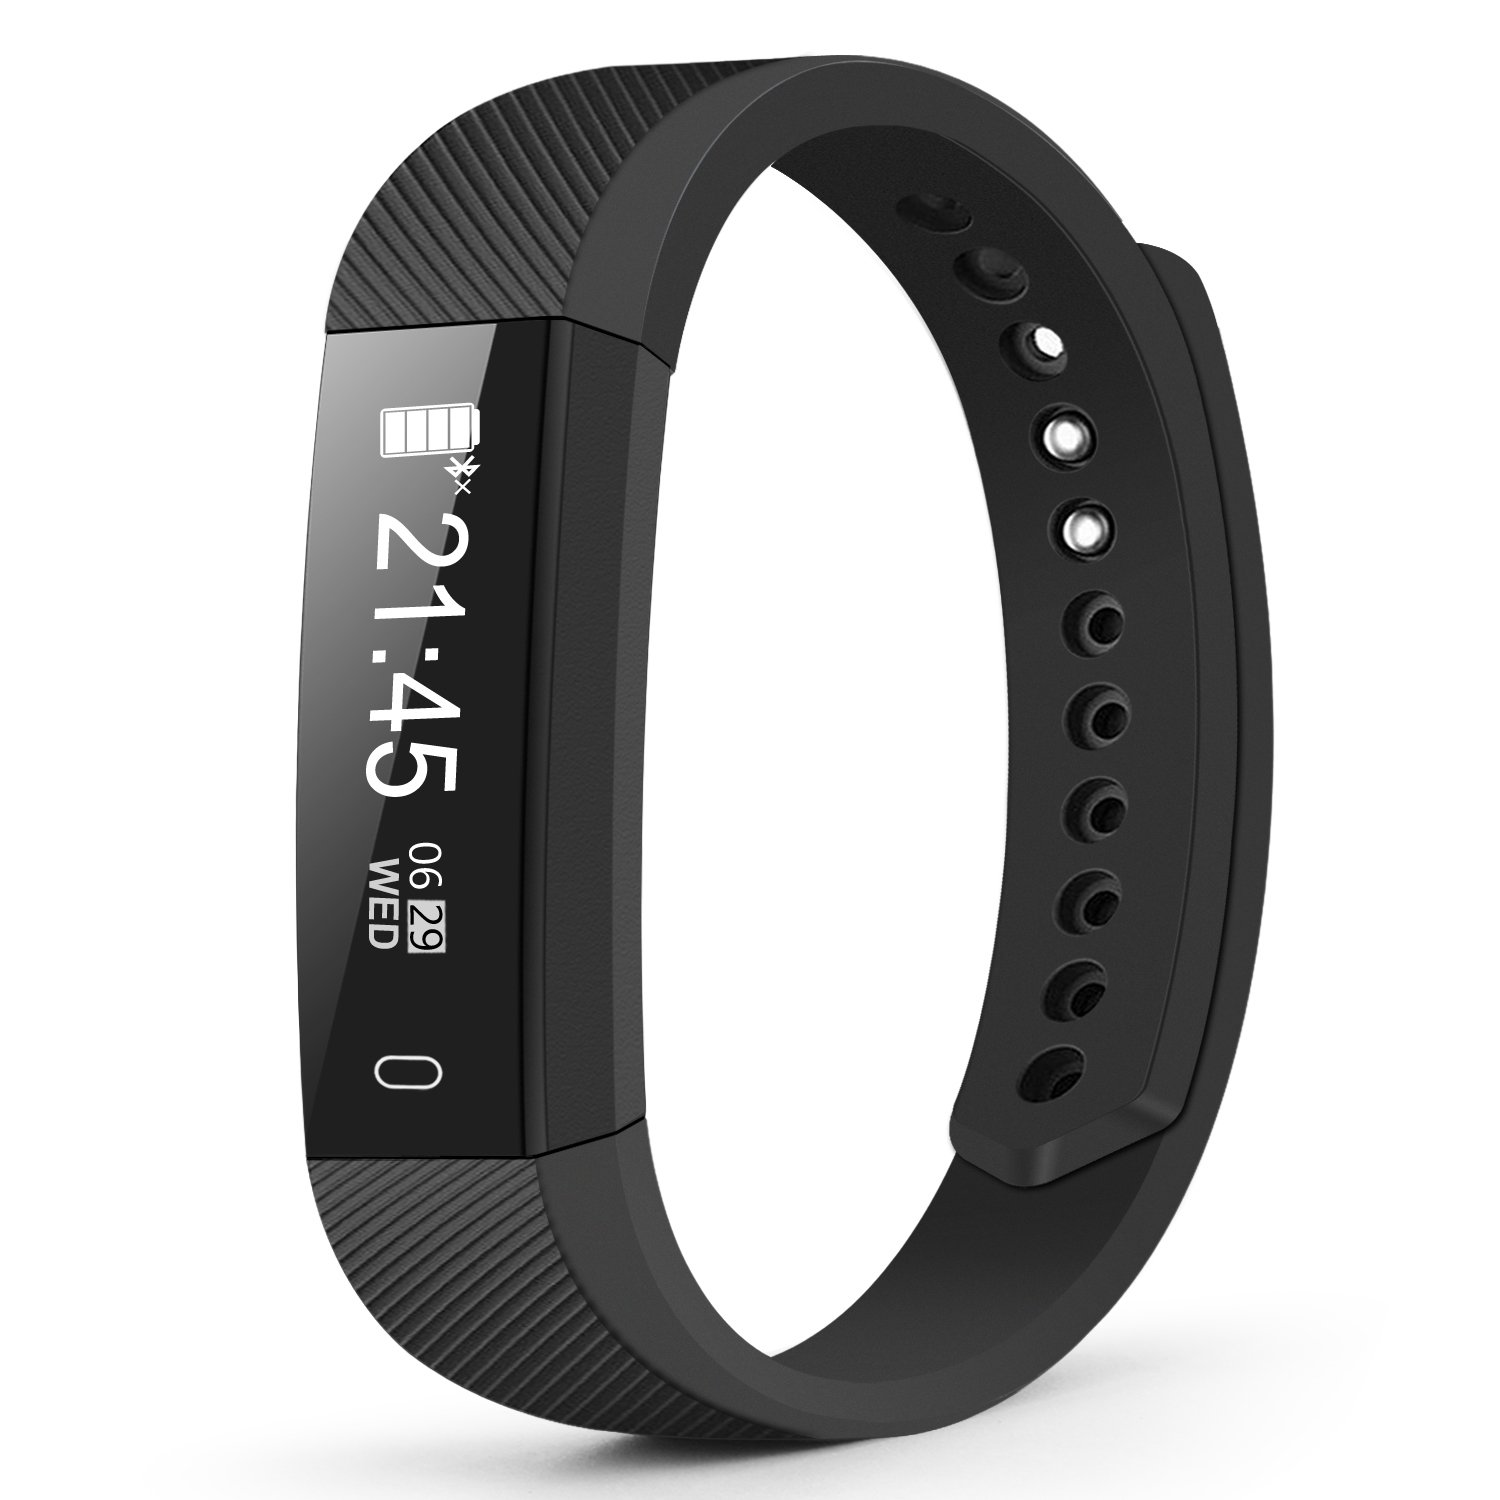 Fitness Tracker, Weesound Smartwatch and Watch Cell Phone Black for iPhone, Android, Samsung, Galaxy Note, Nexus, HTC, Sony